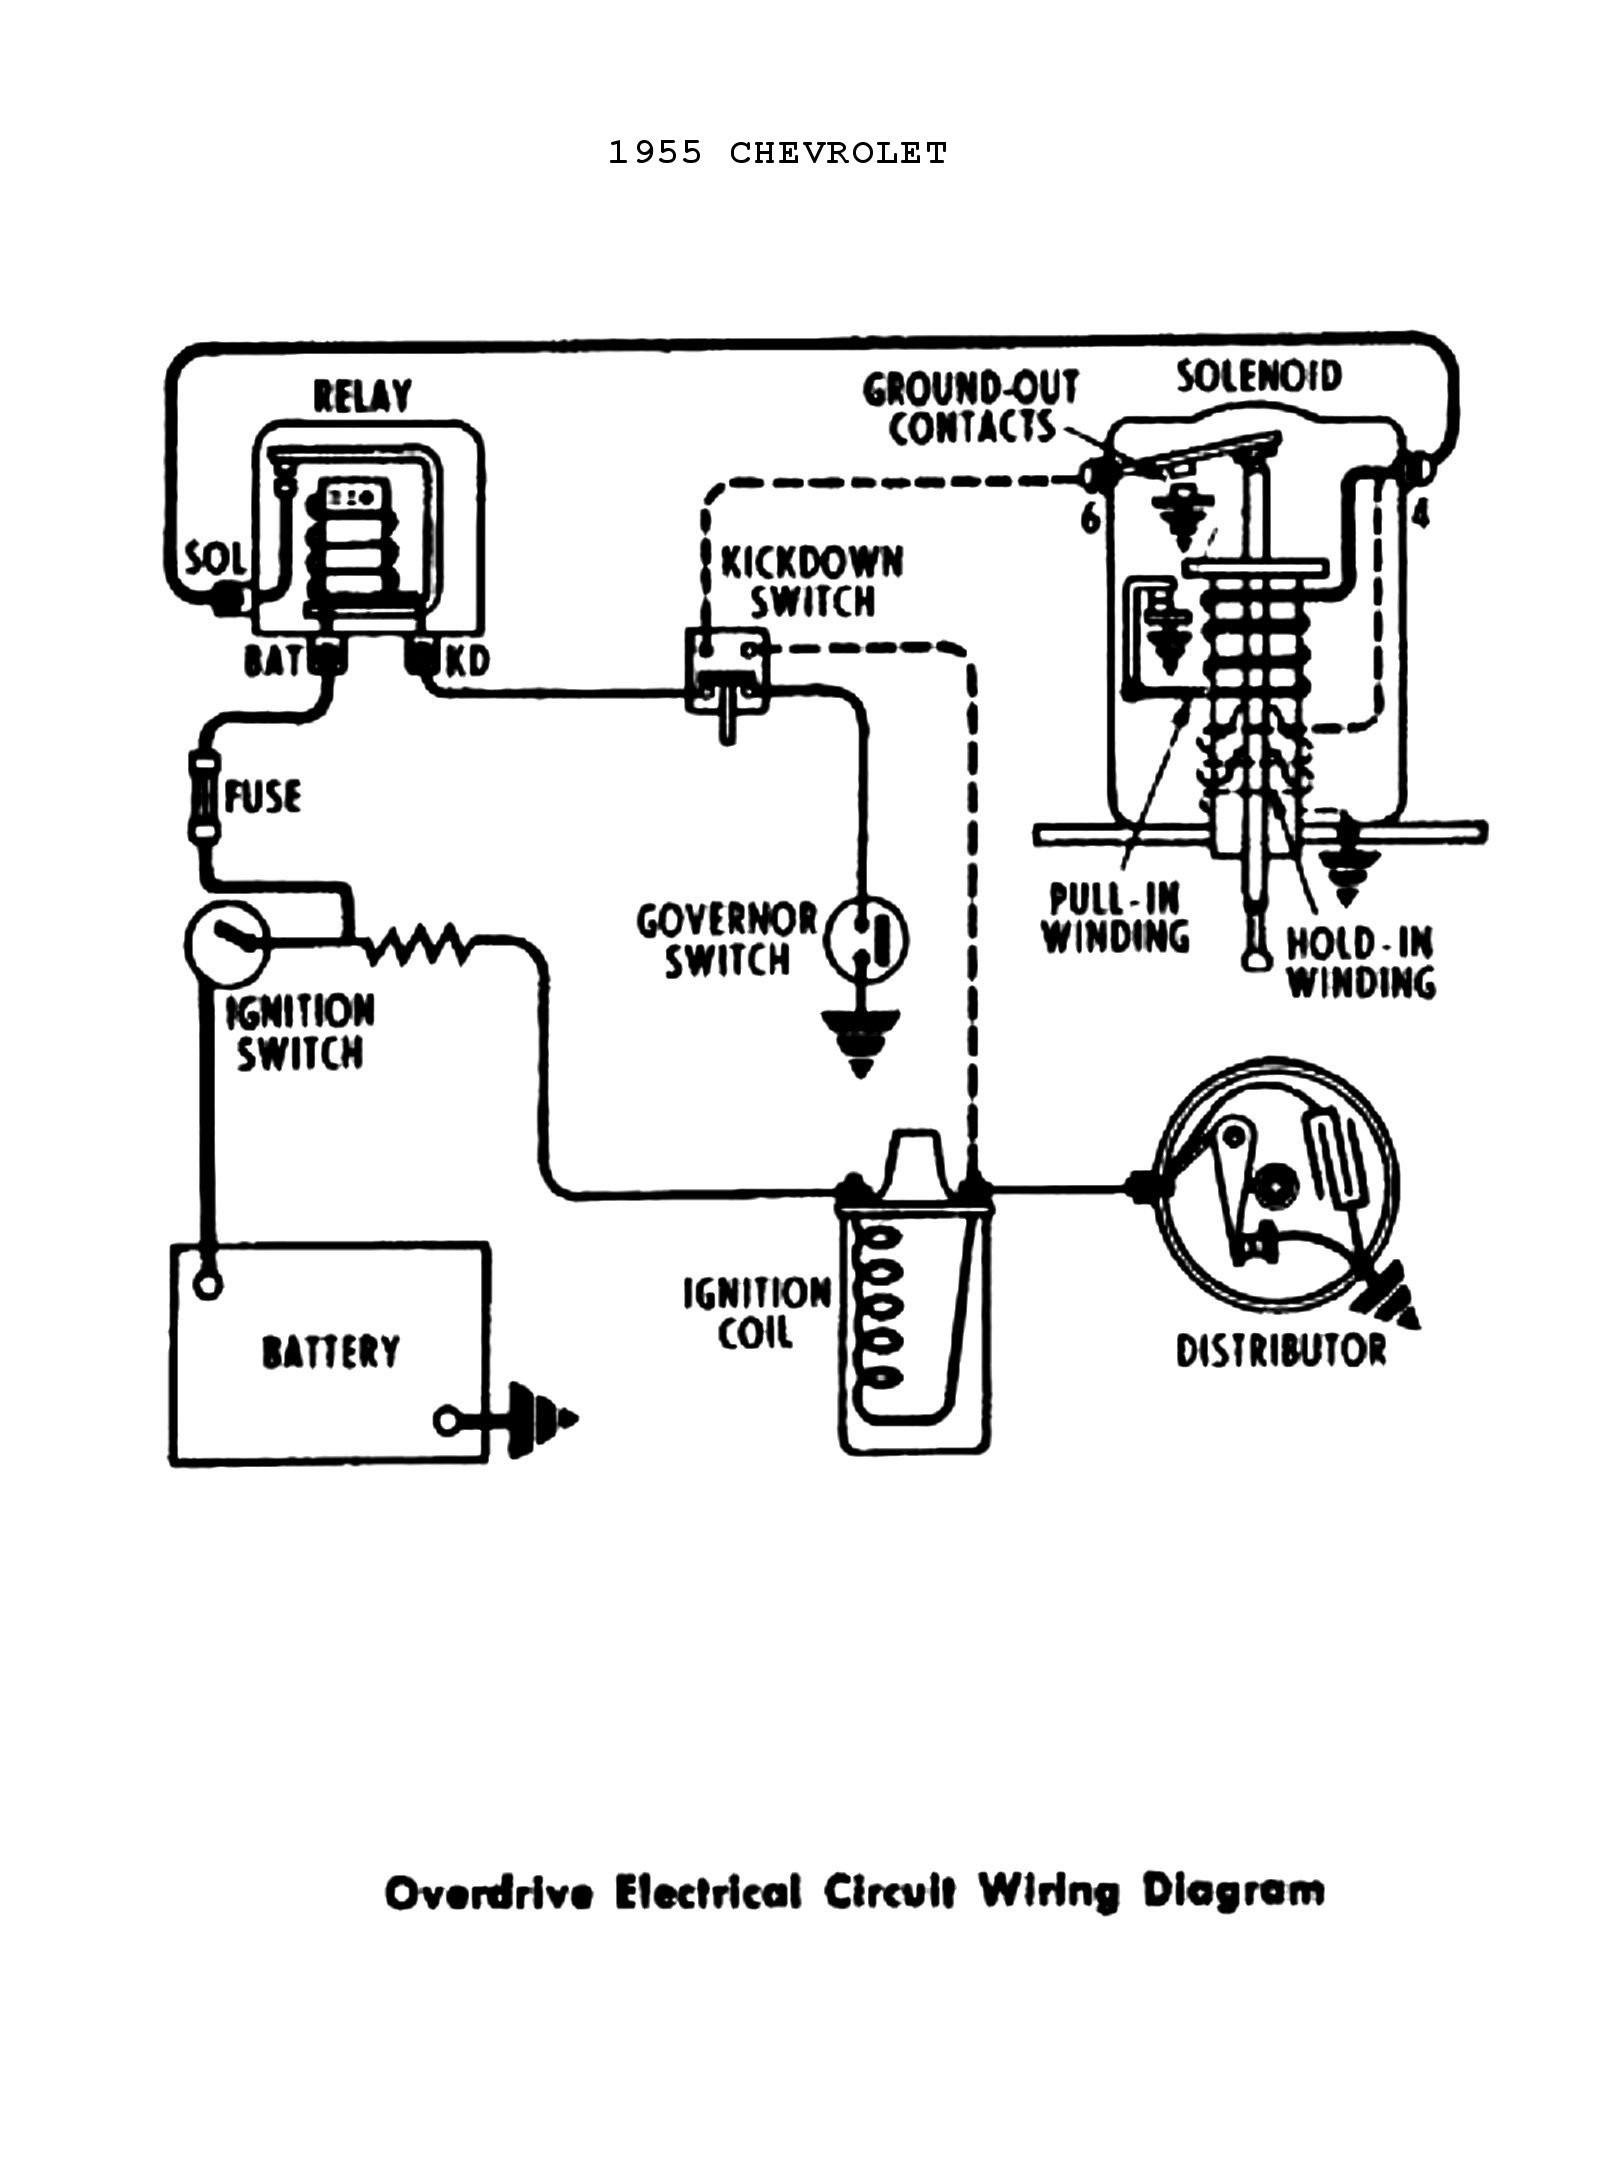 Basic Engine Wiring Diagram Diagram as Well ford F 350